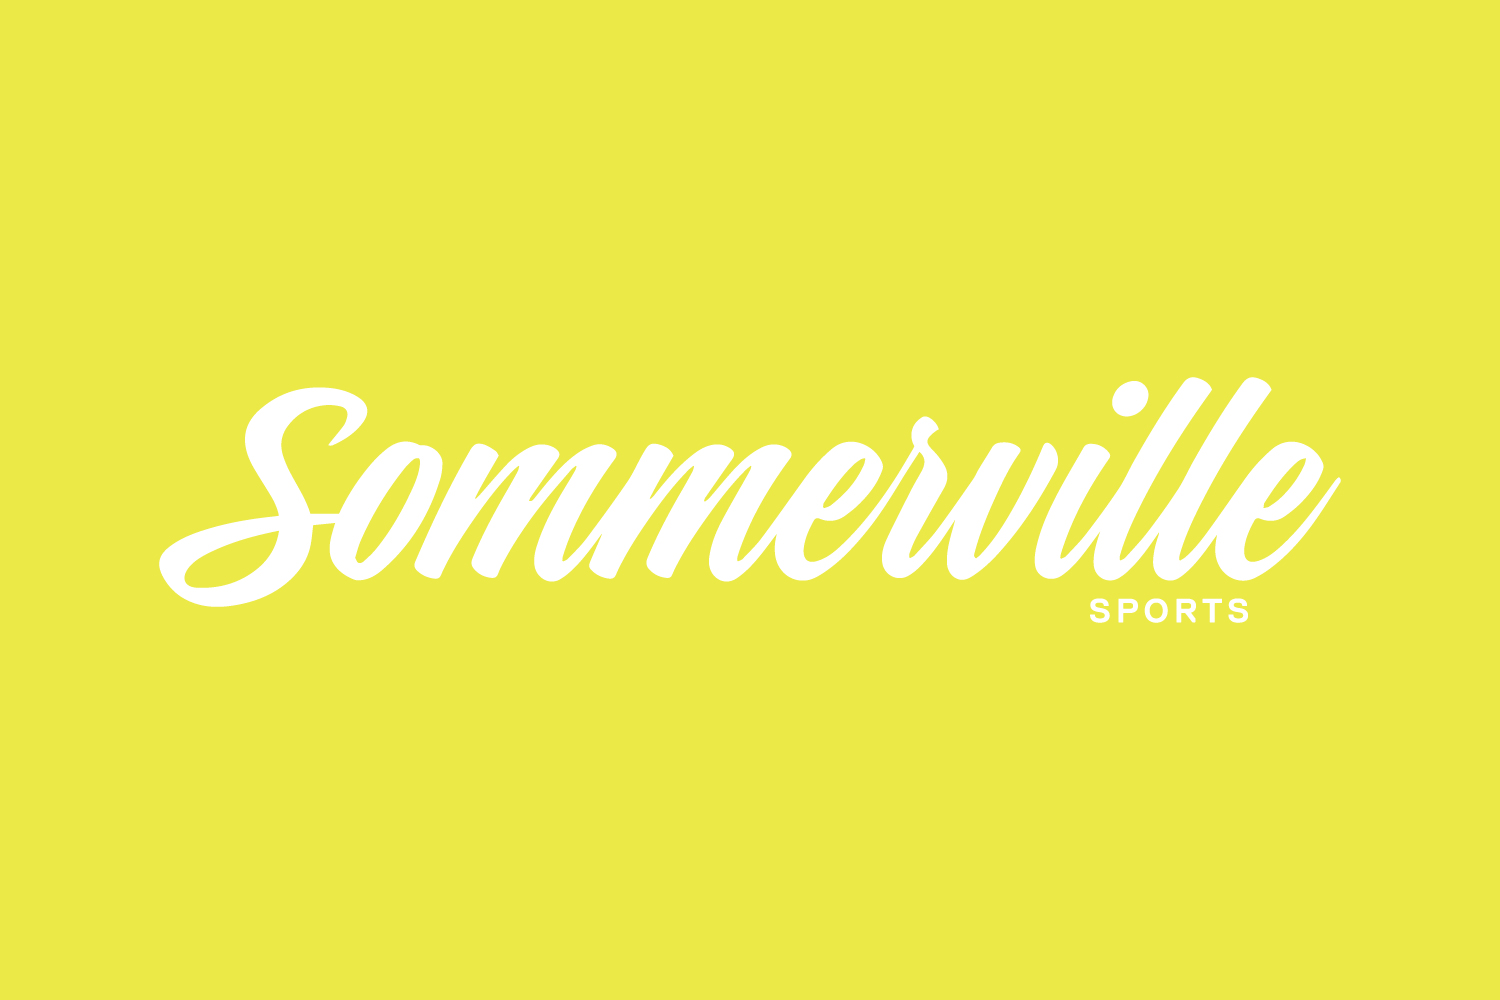 sommerville sports branding and logo design